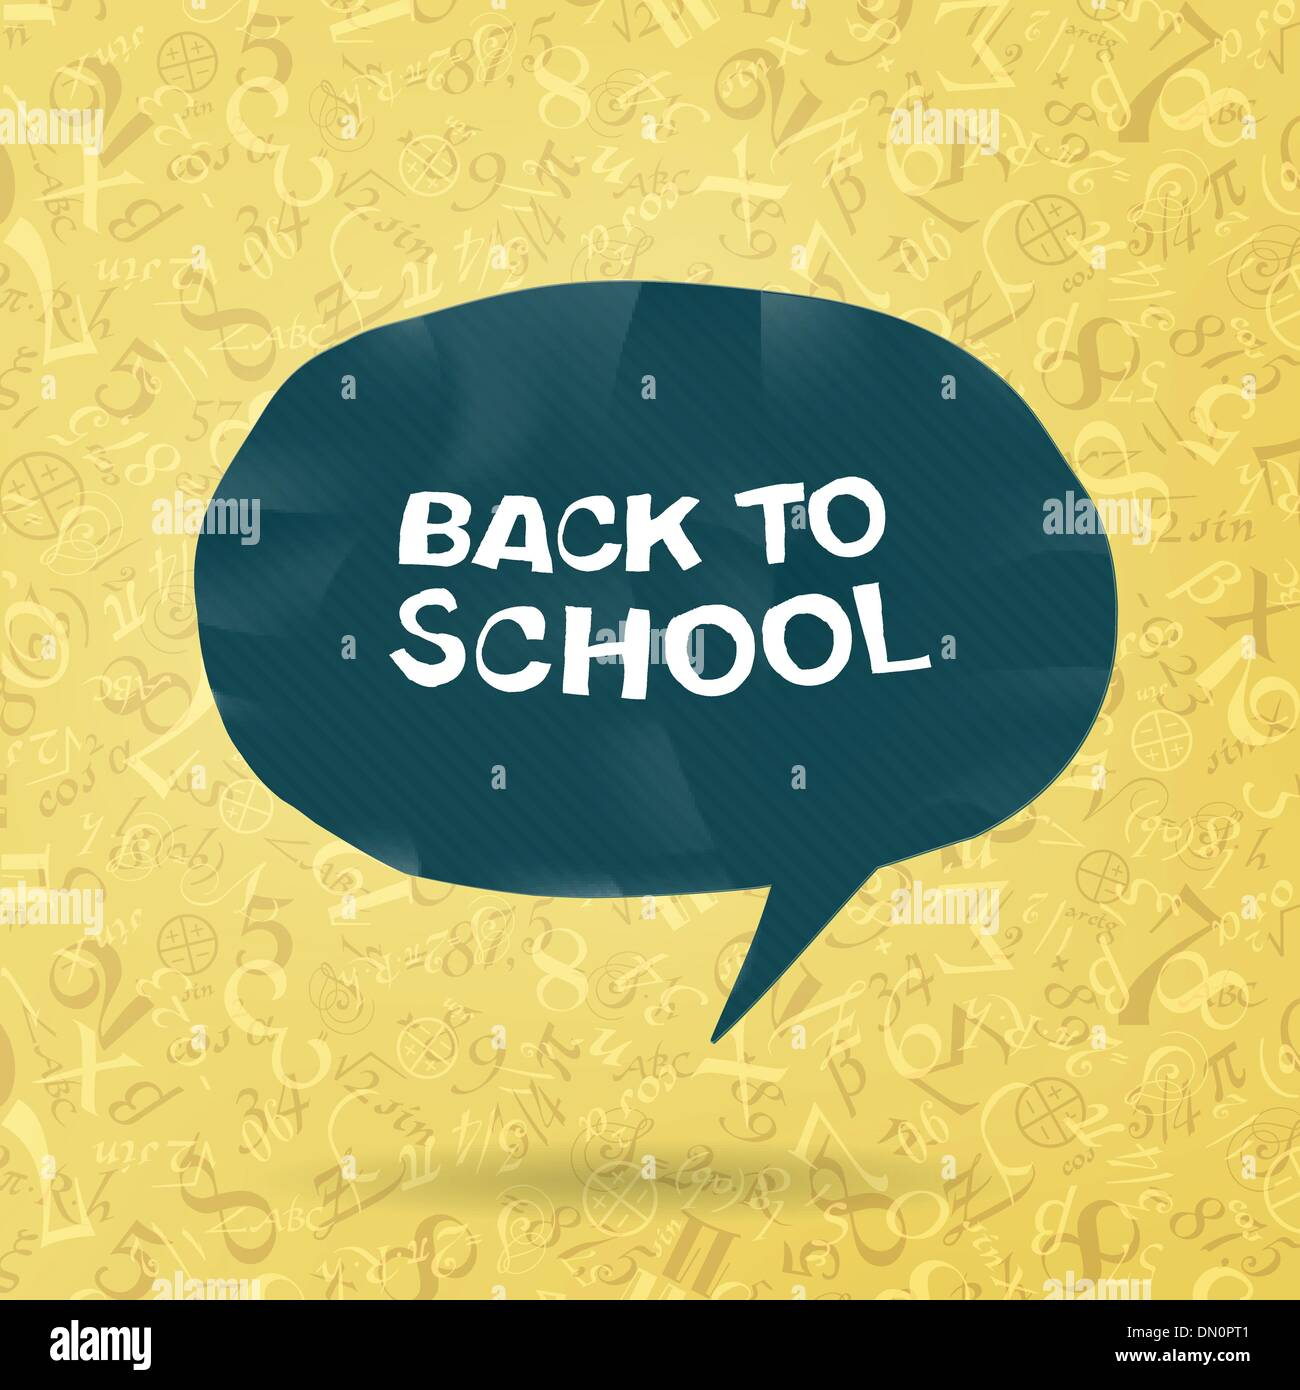 Back to school text in speech bubble on figures and formulas bac - Stock Image